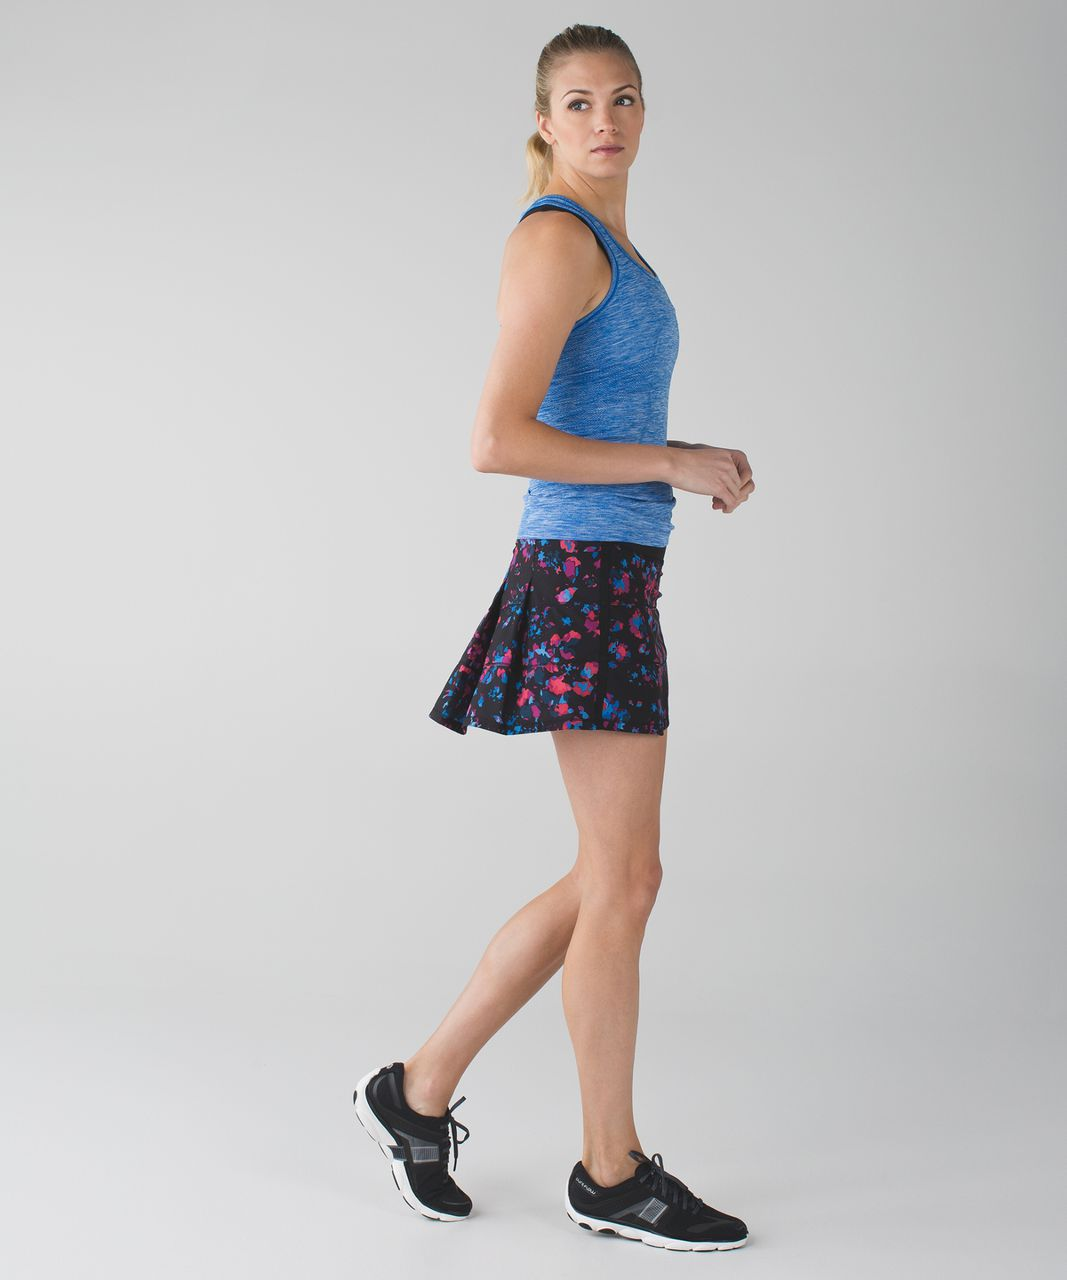 Lululemon Pace Rival Skirt II (Tall) *4-way Stretch - Dandy Digie Multi / Black